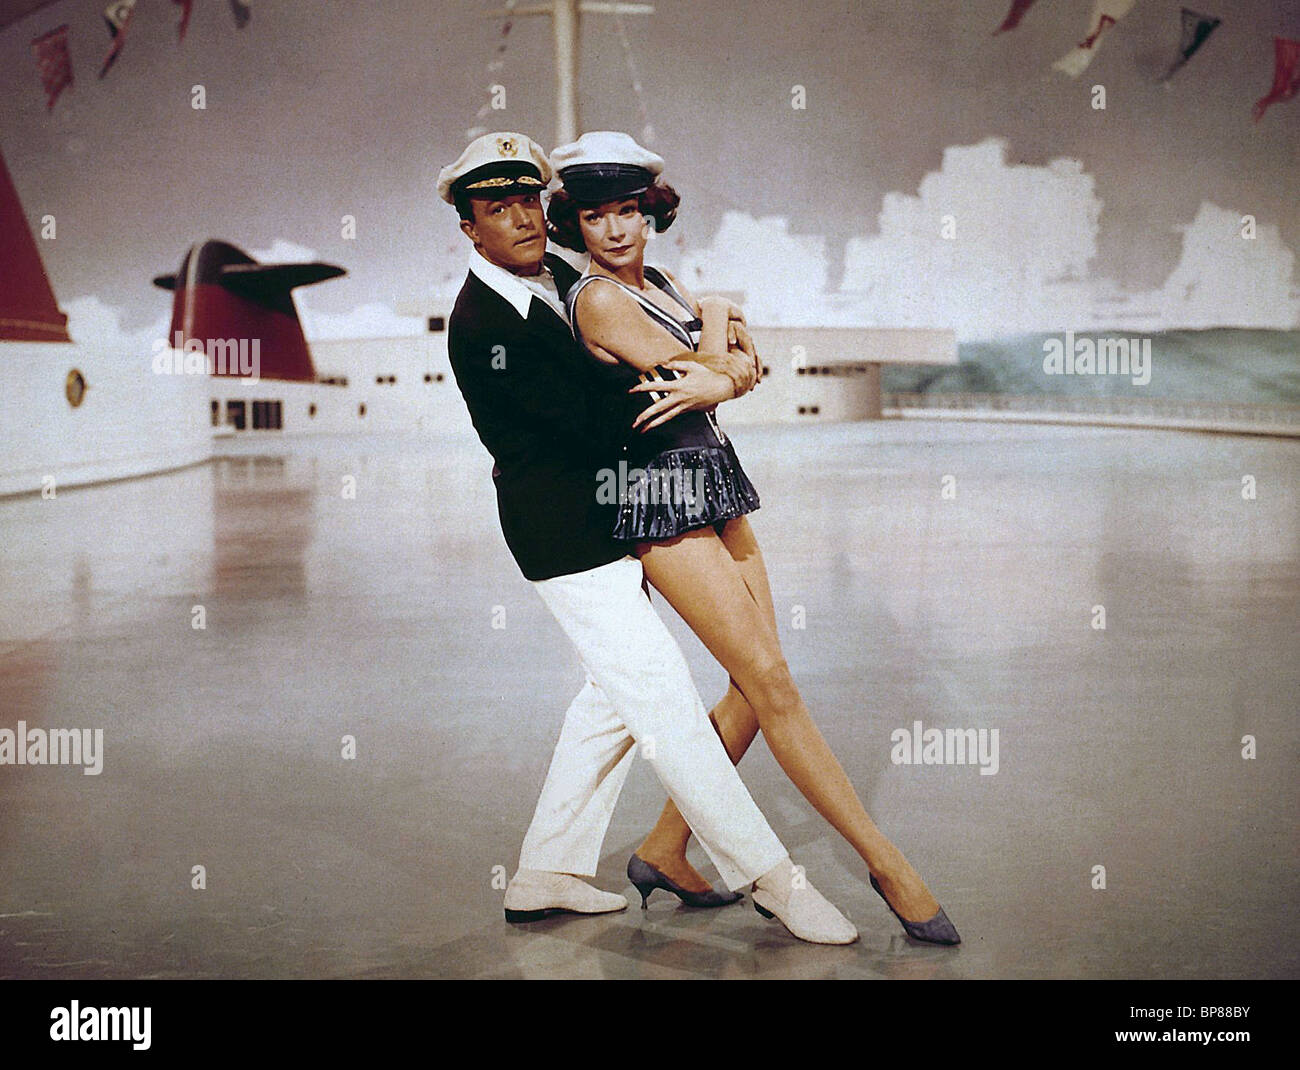 GENE KELLY & SHIRLEY MACLAINE WHAT A WAY TO GO (1964 Stock ...Shirley Maclaine What A Way To Go